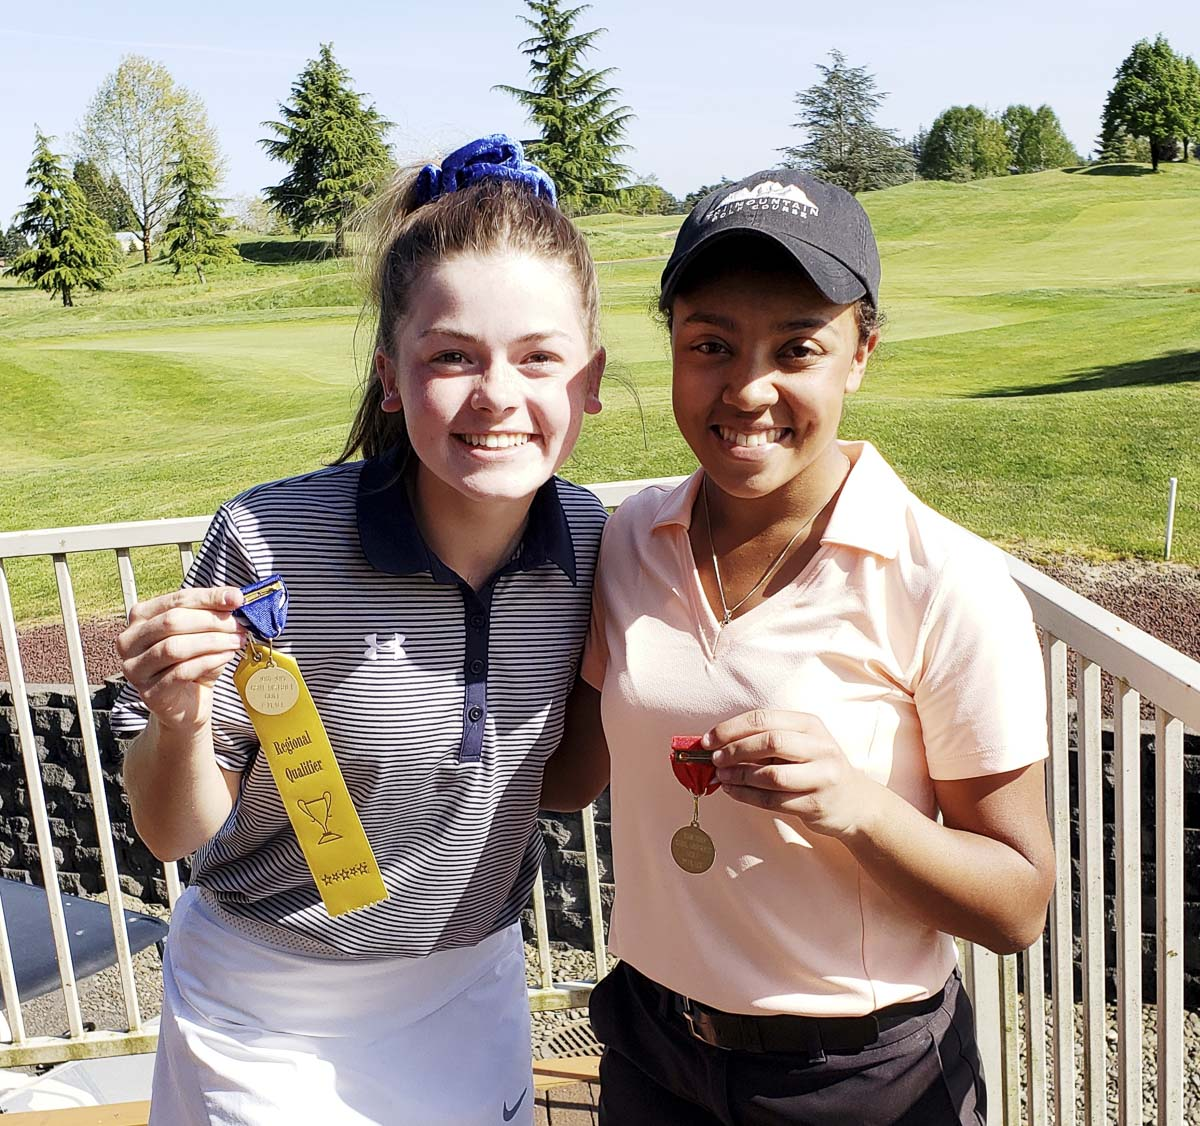 Liz Dolan of Kelso (left) and Kiana Coburn of Fort Vancouver finished first and second at the Class 3A district girls golf tournament Tuesday at Tri-Mountain Golf Course. Photo by Paul Valencia